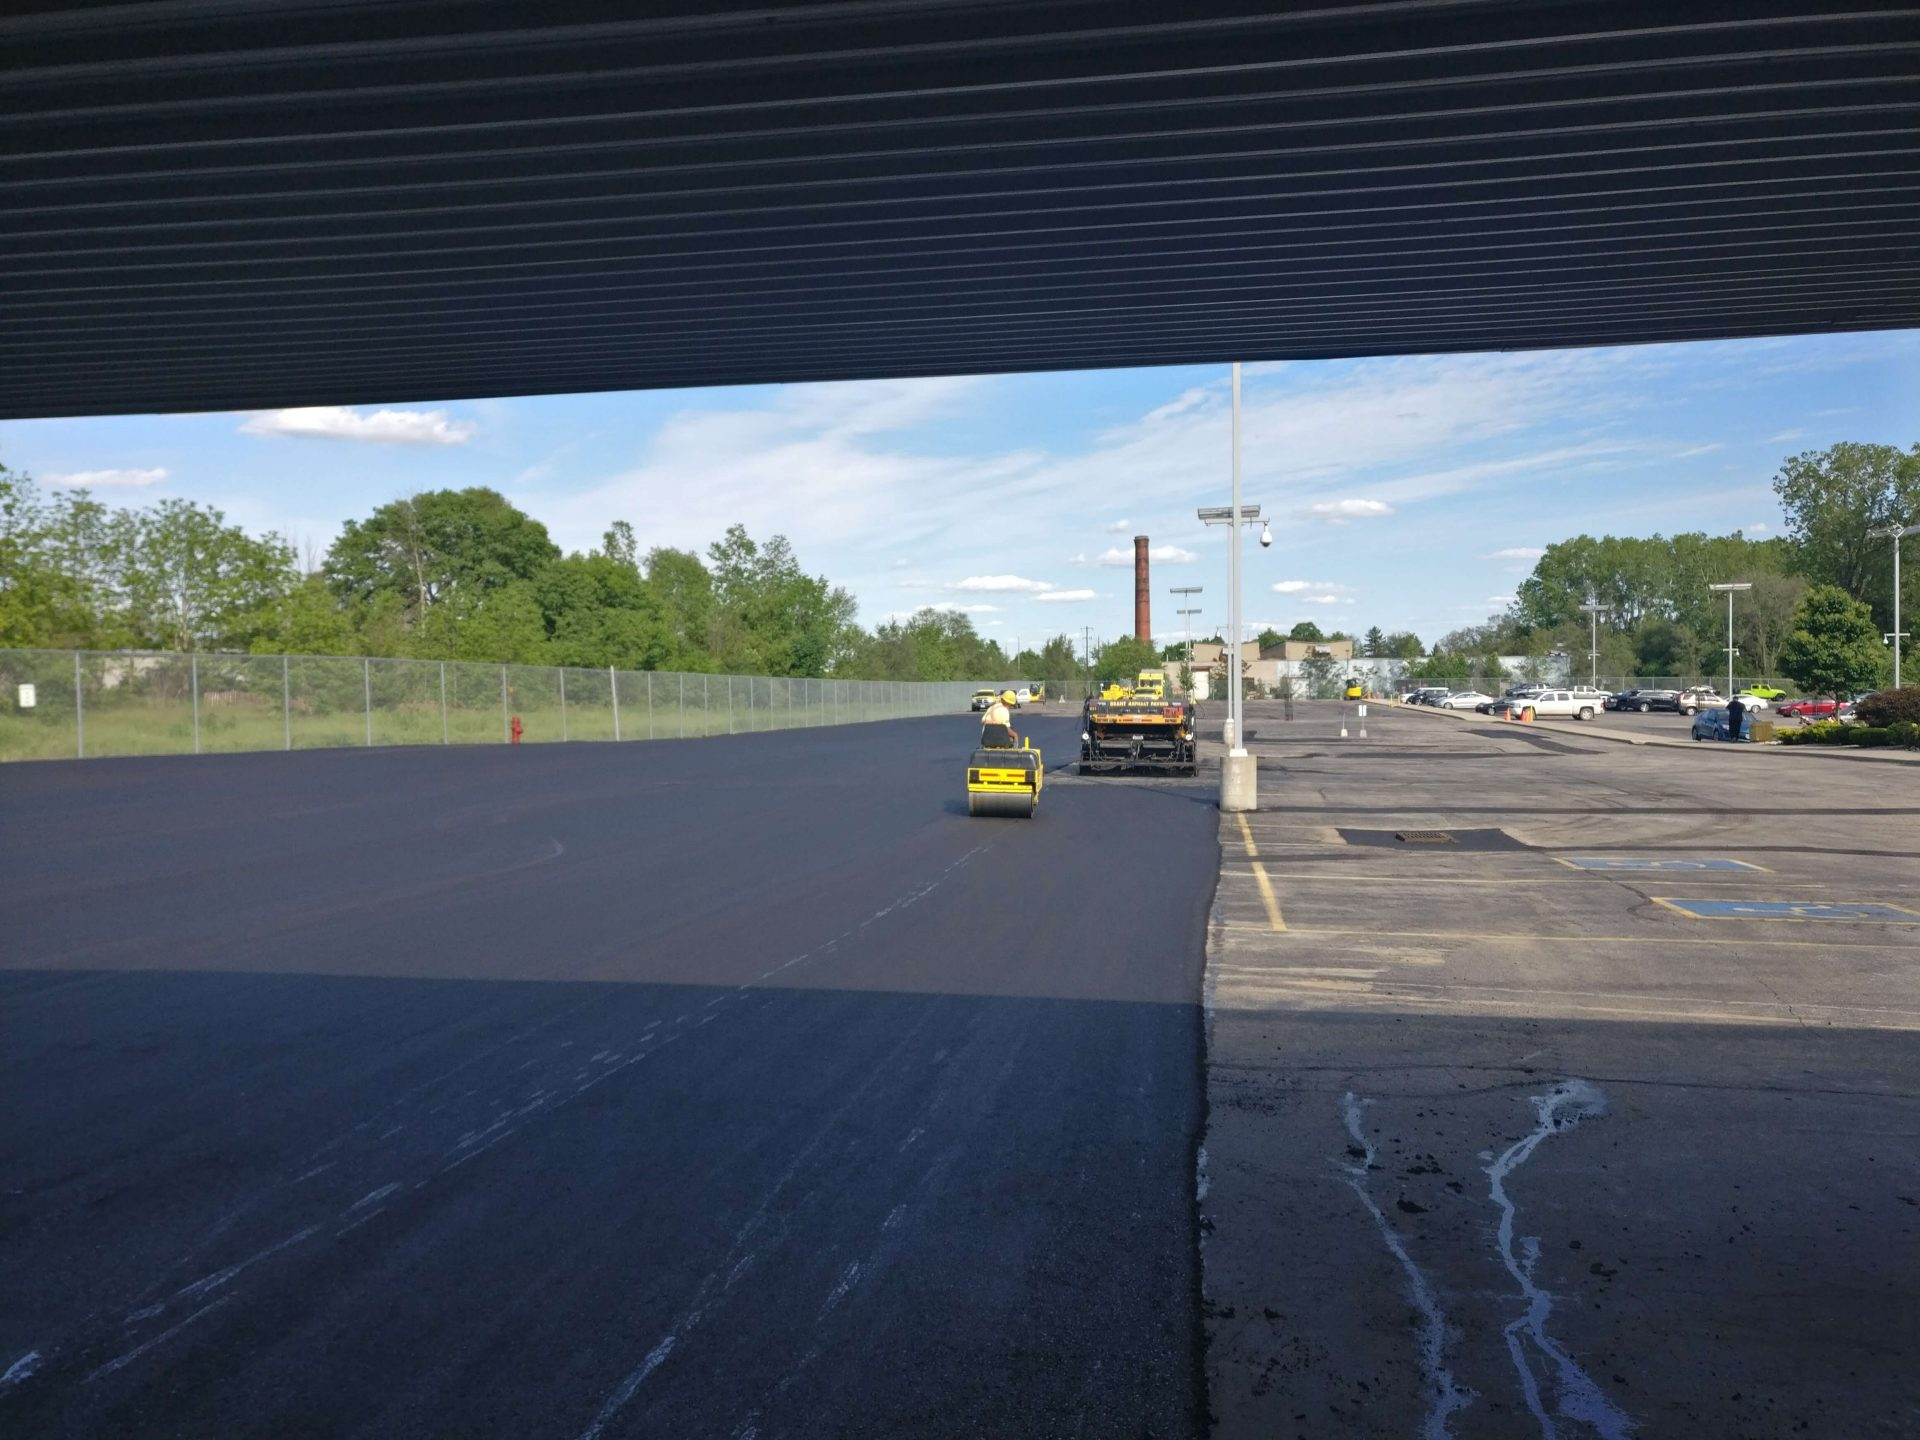 Half-finished parking lot